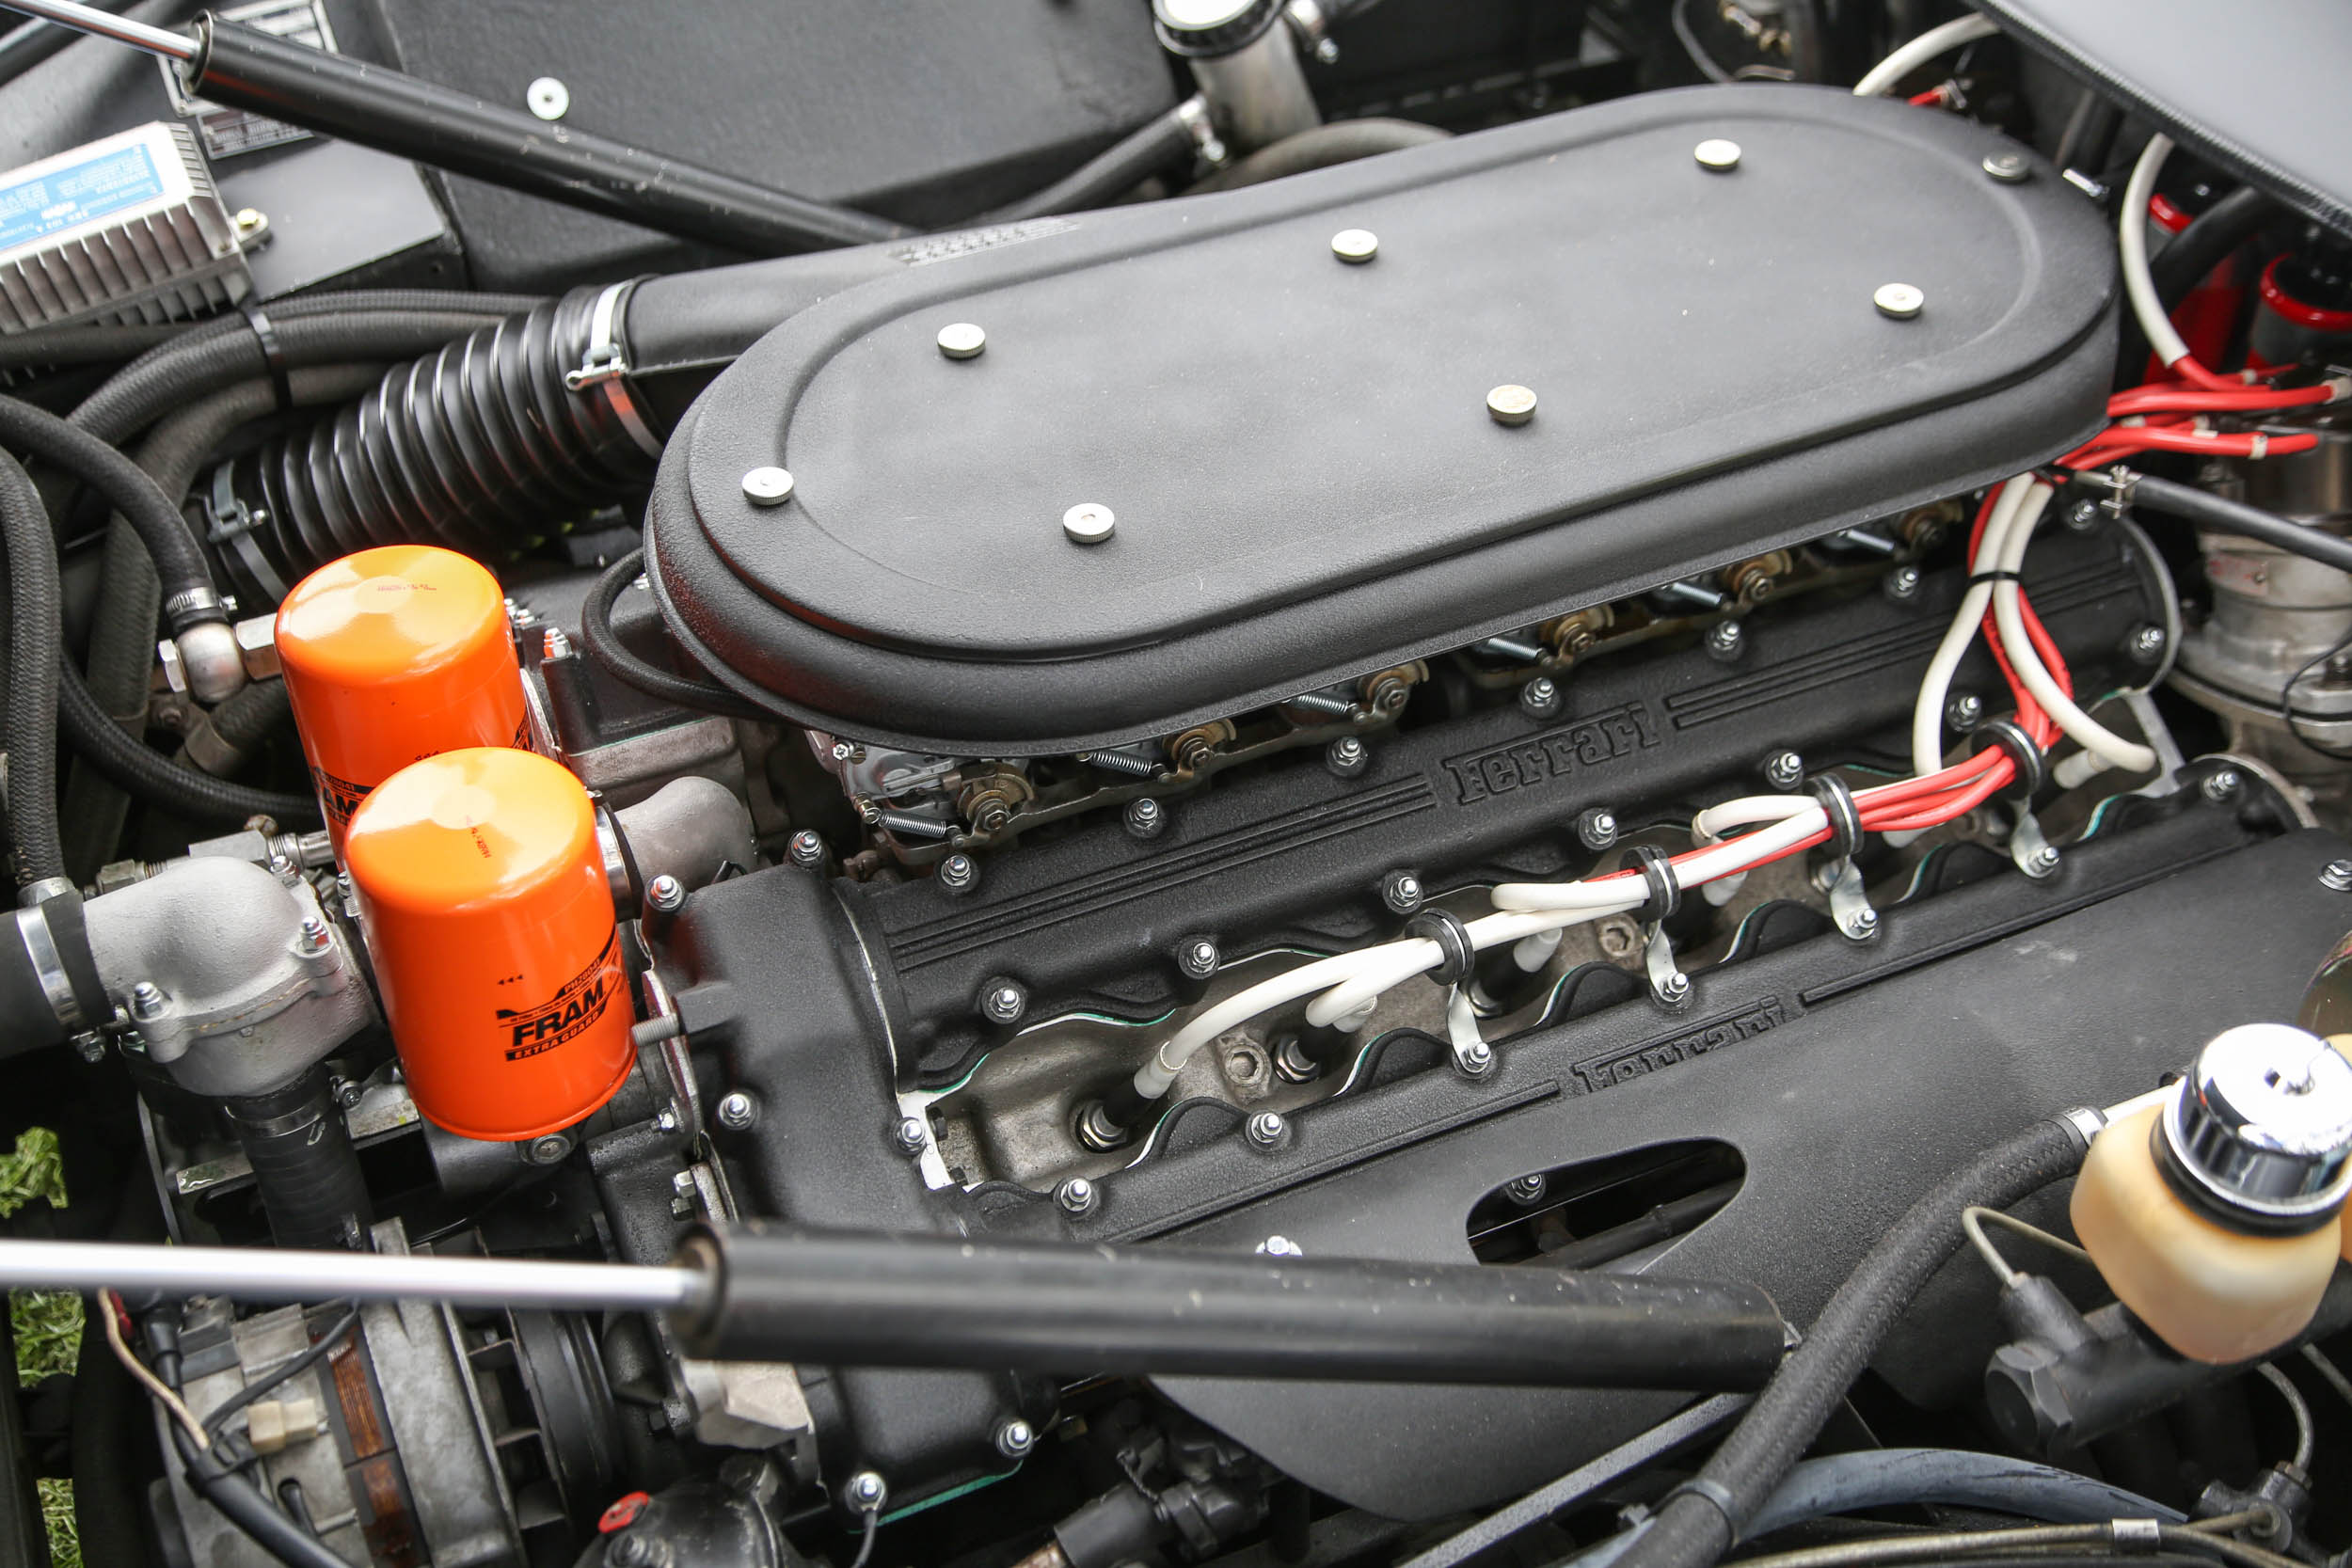 Six Webers in a row feed the front-mounted 4.4-liter Ferrari V-12 in this 365 that produces 352 horsepower.